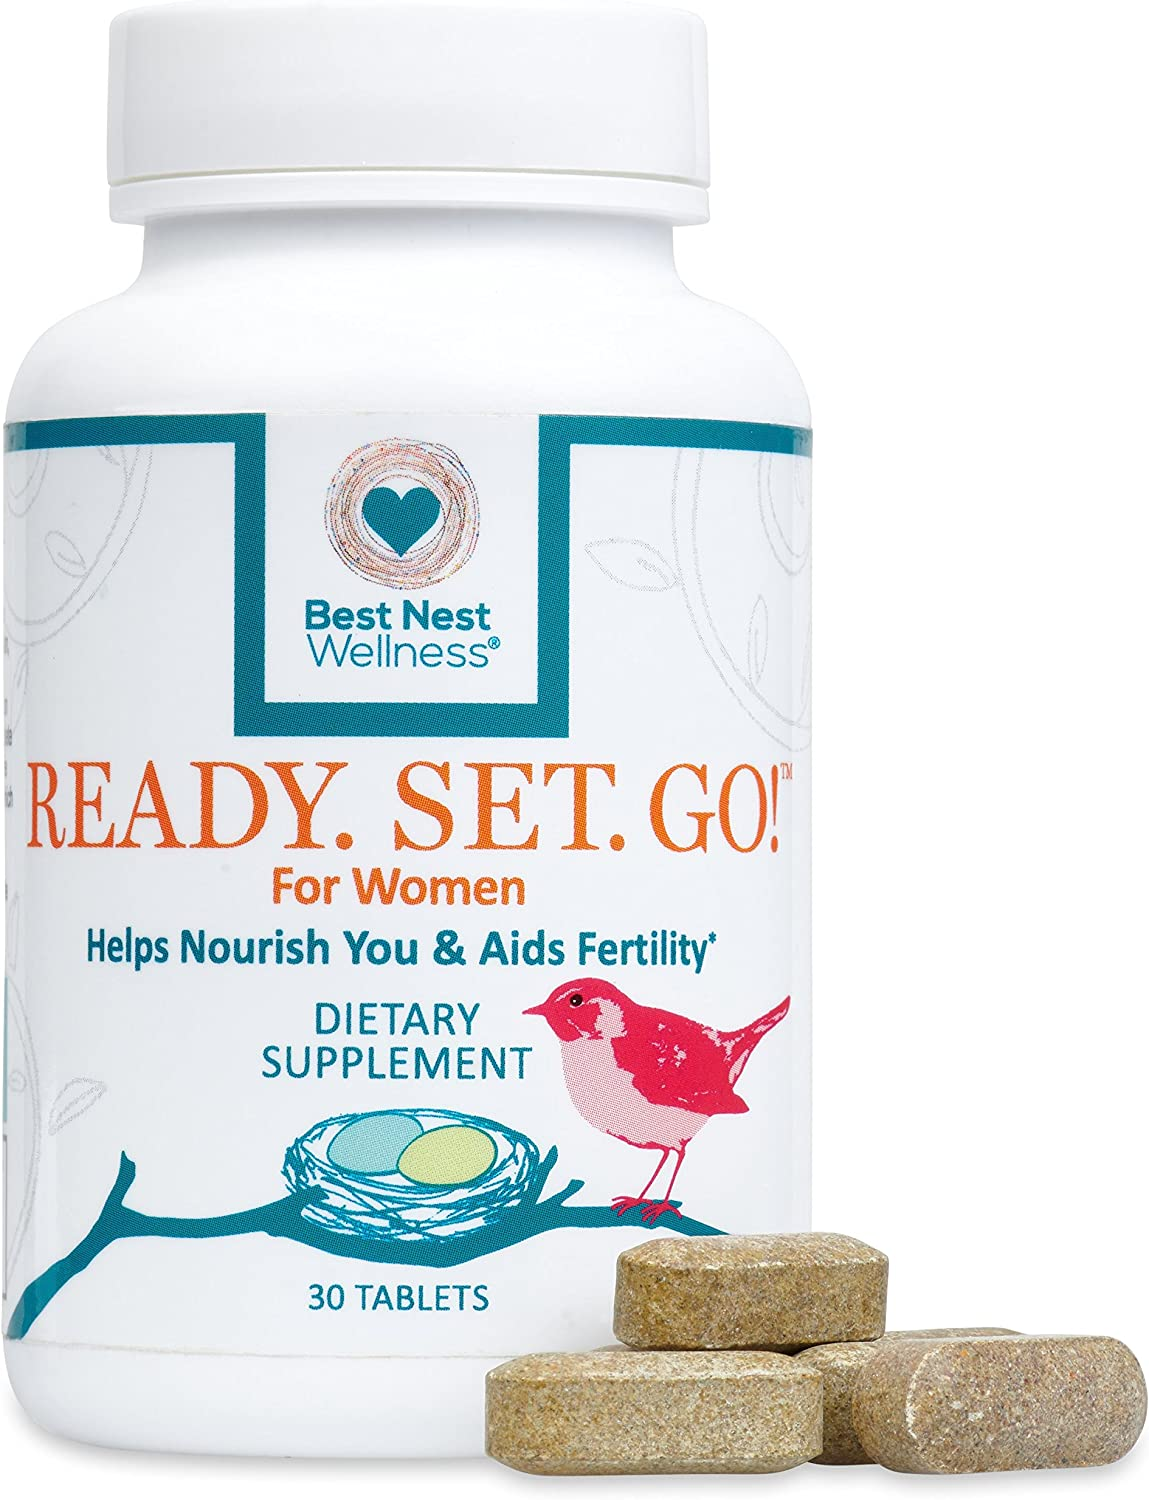 Ready. Set. Go Best Nest Fertility Formula for Women, Doctor Recommended, Methylfolate, Whole Food, Antioxidants, Herbal Fertility Blend Prenatal Nutrition, 30 Count